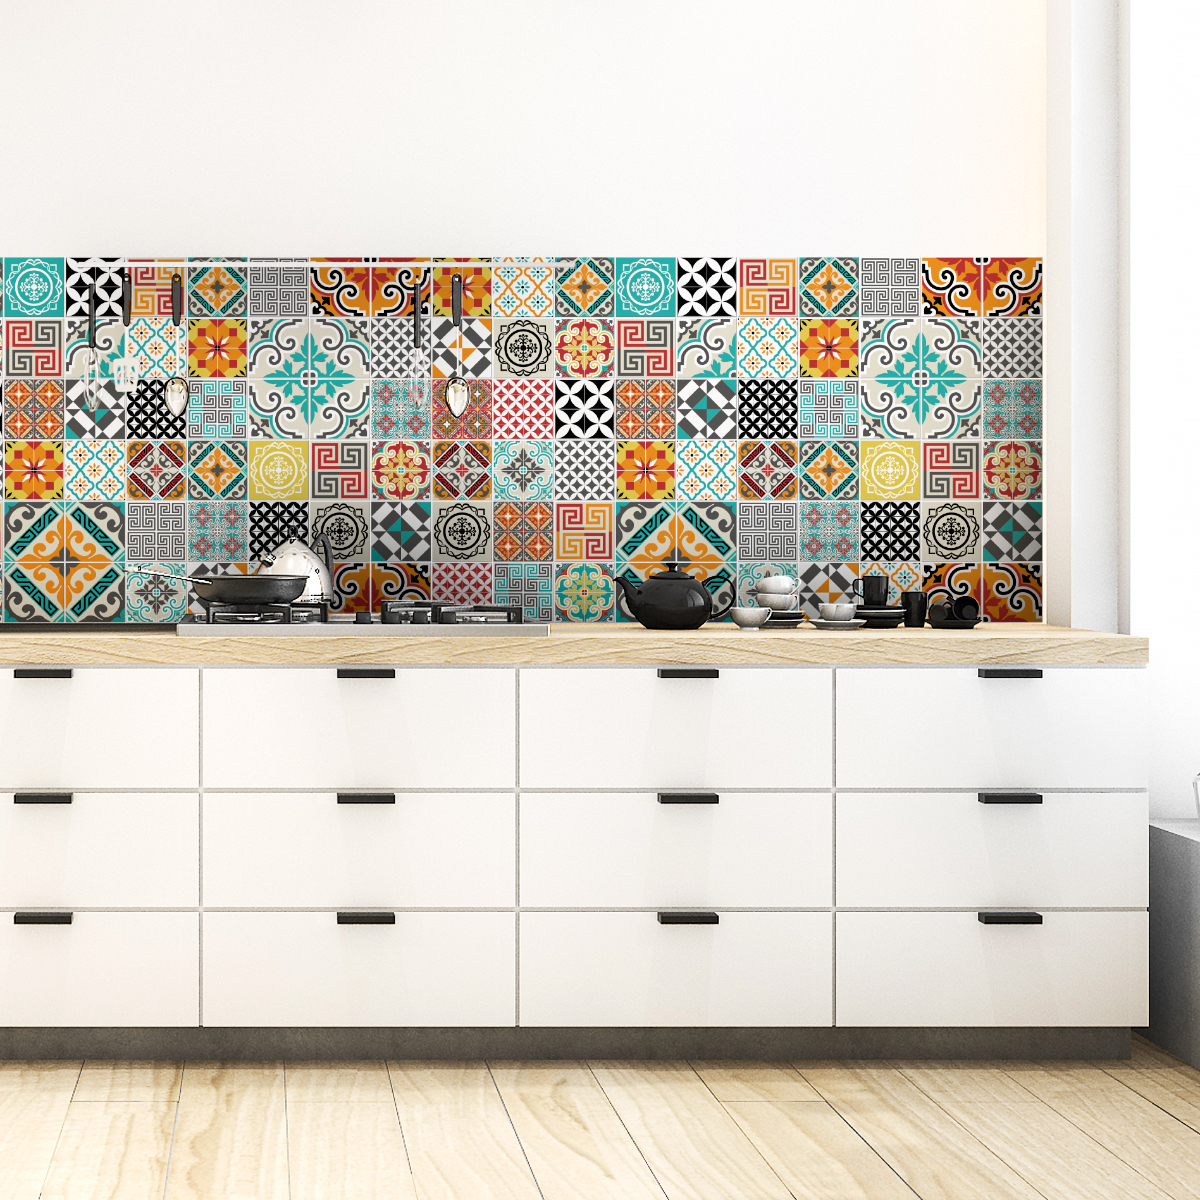 Stickers Carrelage Cuisine: 60 Stickers Carrelages Azulejos Batista